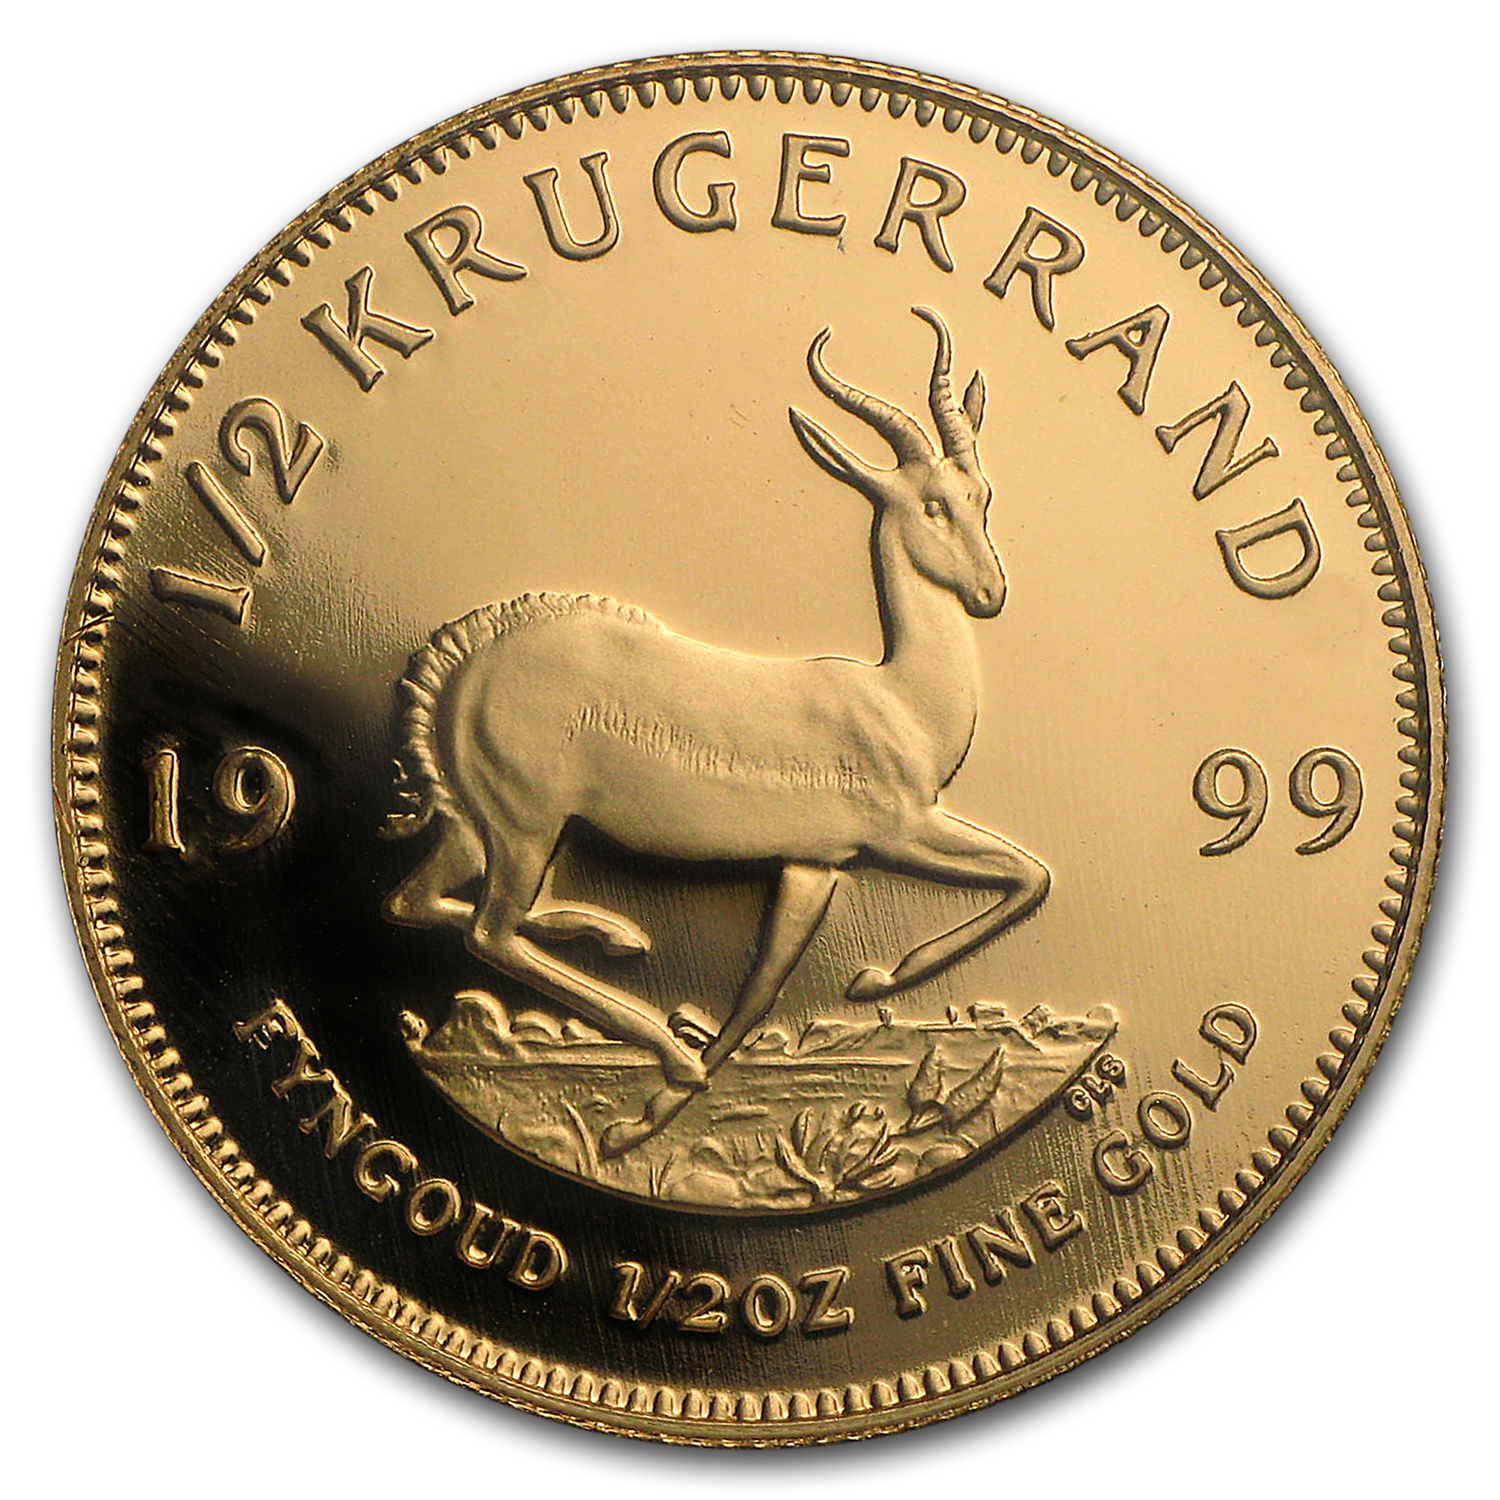 1999 South Africa 4-Coin Gold Krugerrand Proof Set